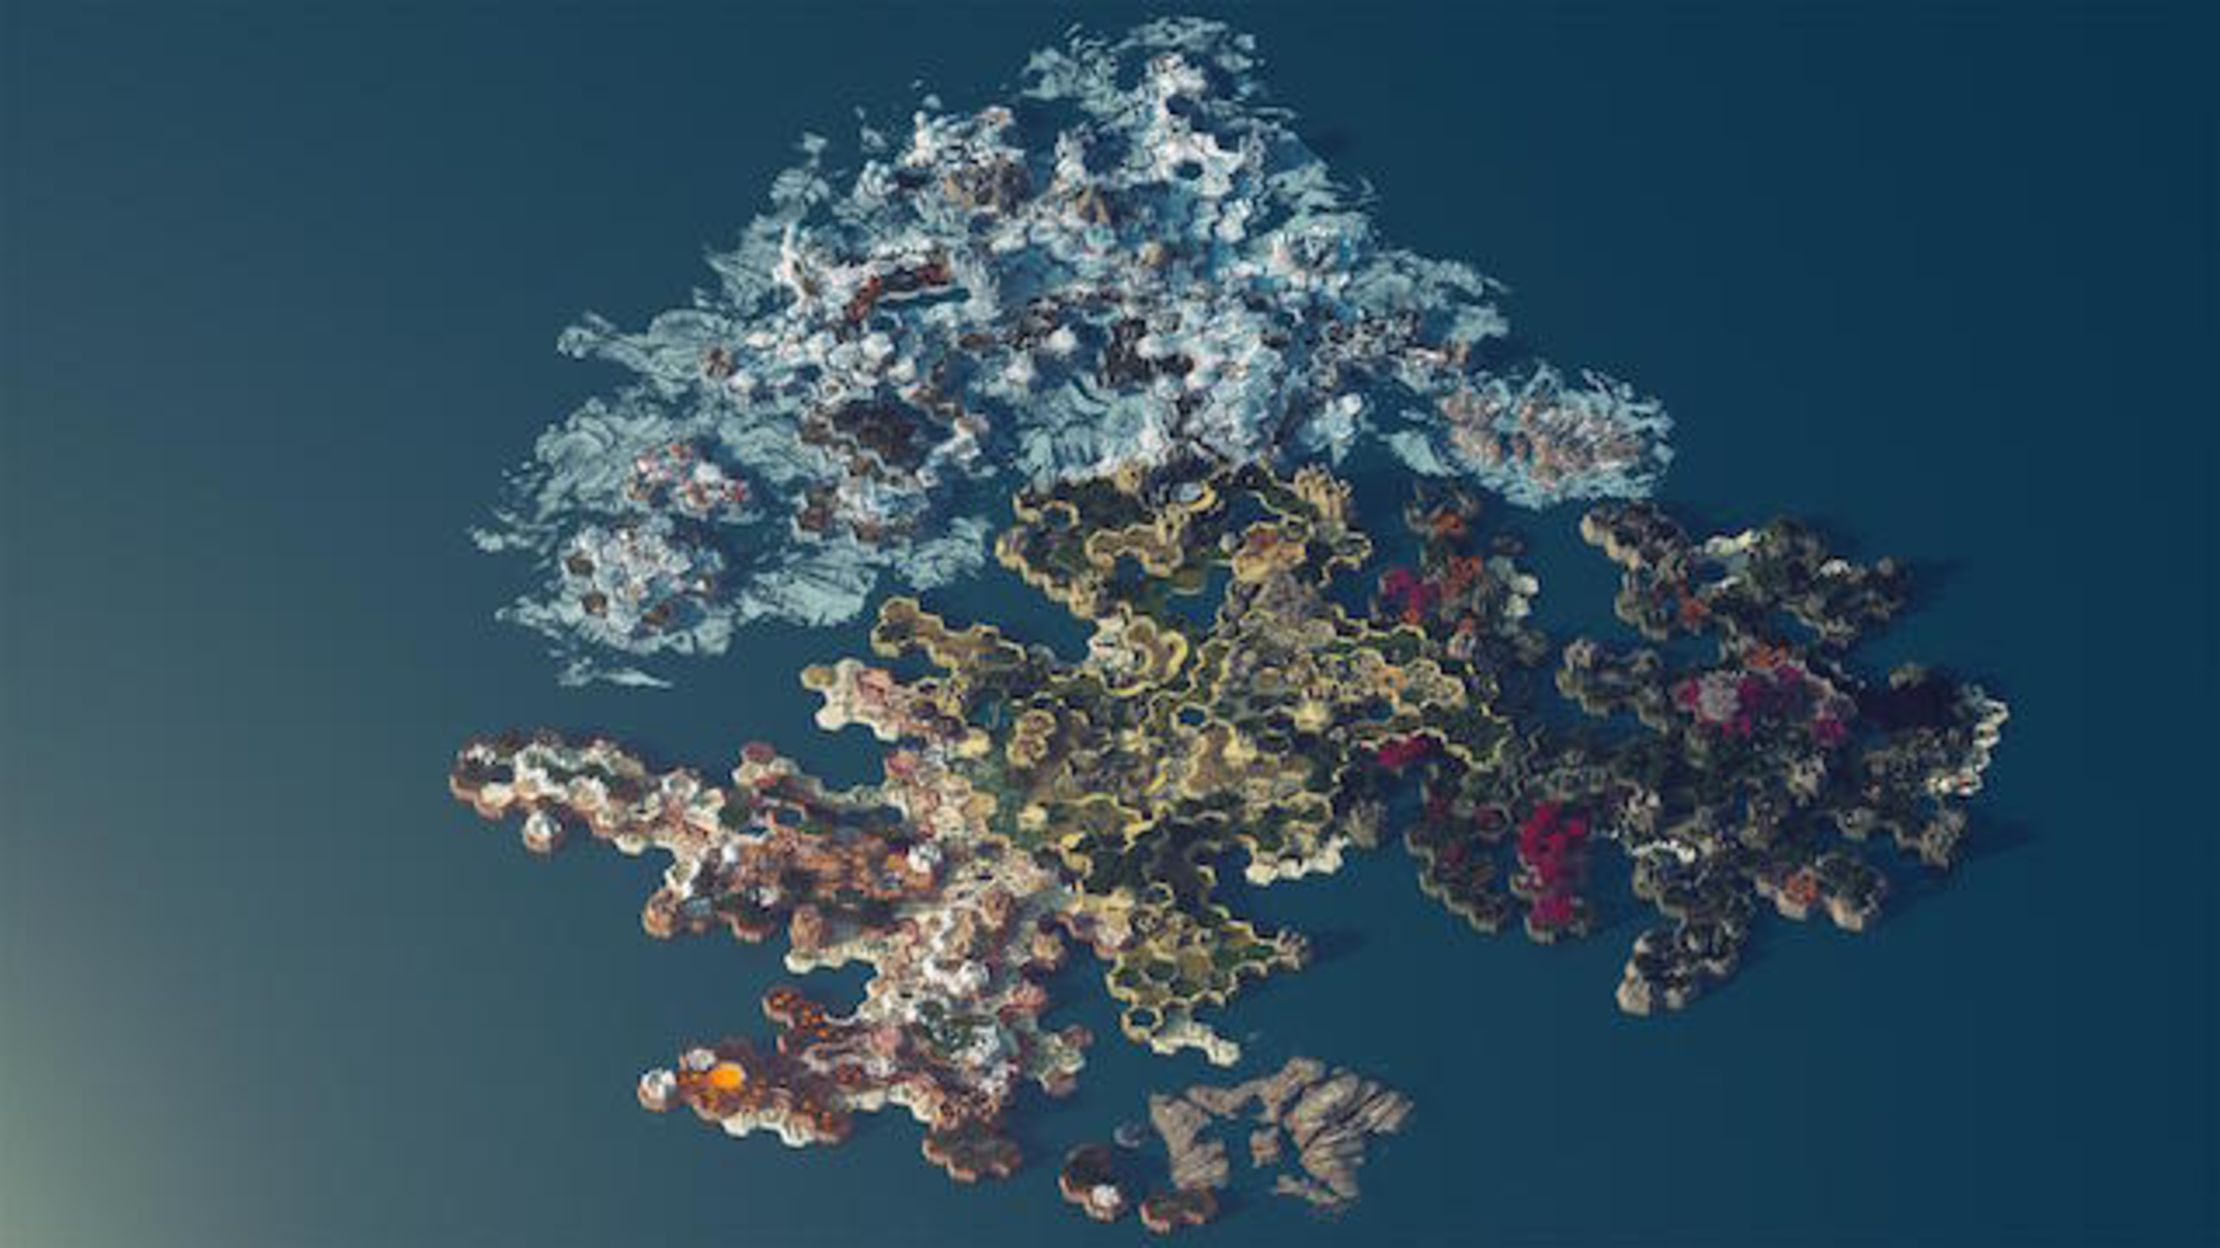 It Took 400 Hours to Create This Massive 'Minecraft' Map | Mental Floss